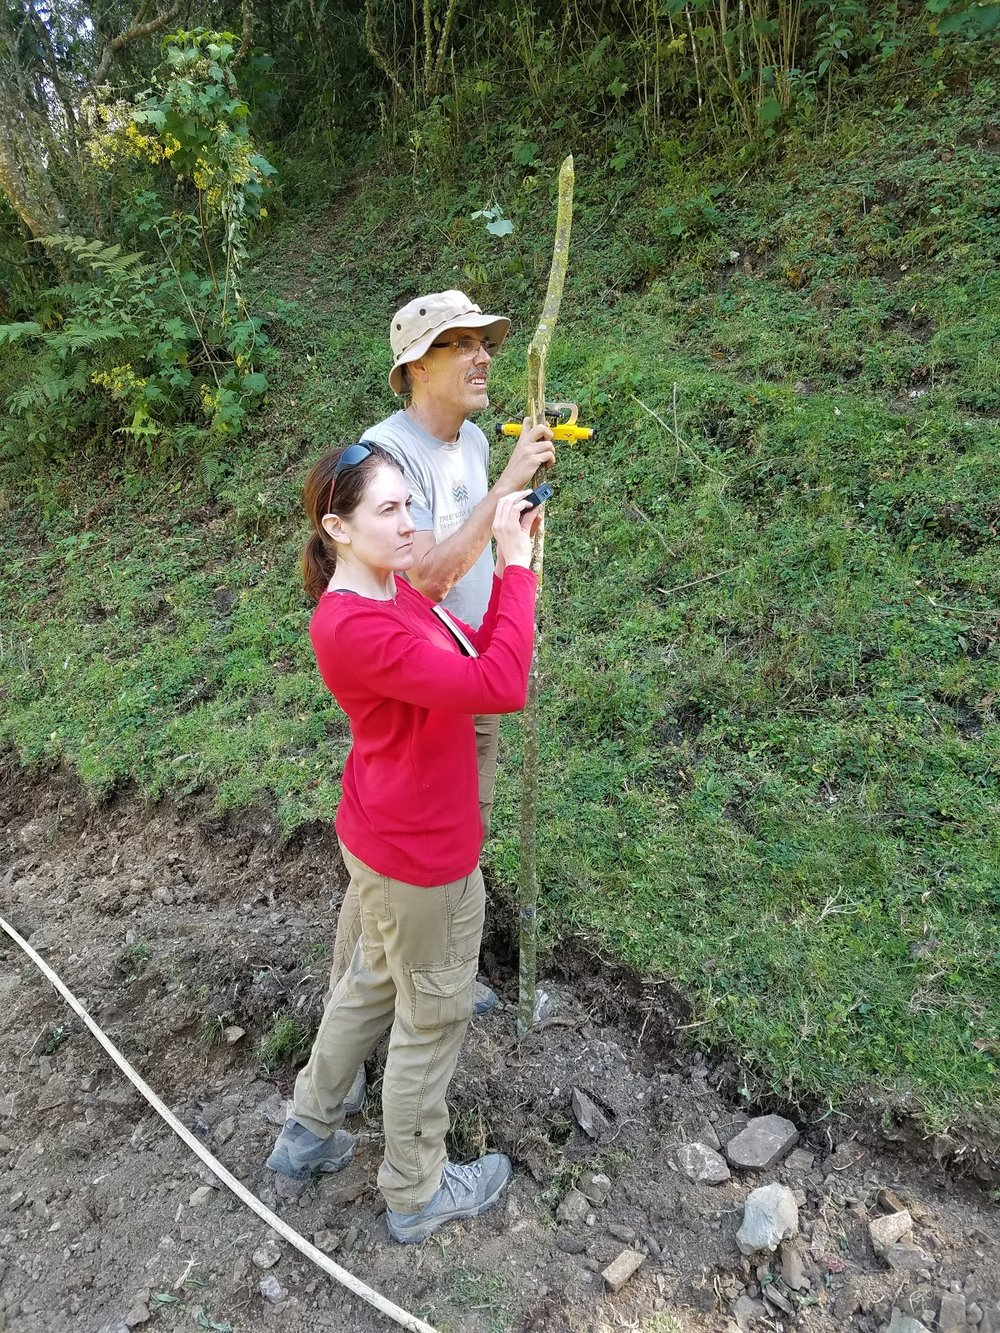 Tiffany and Jeff surveying with the Abney level.